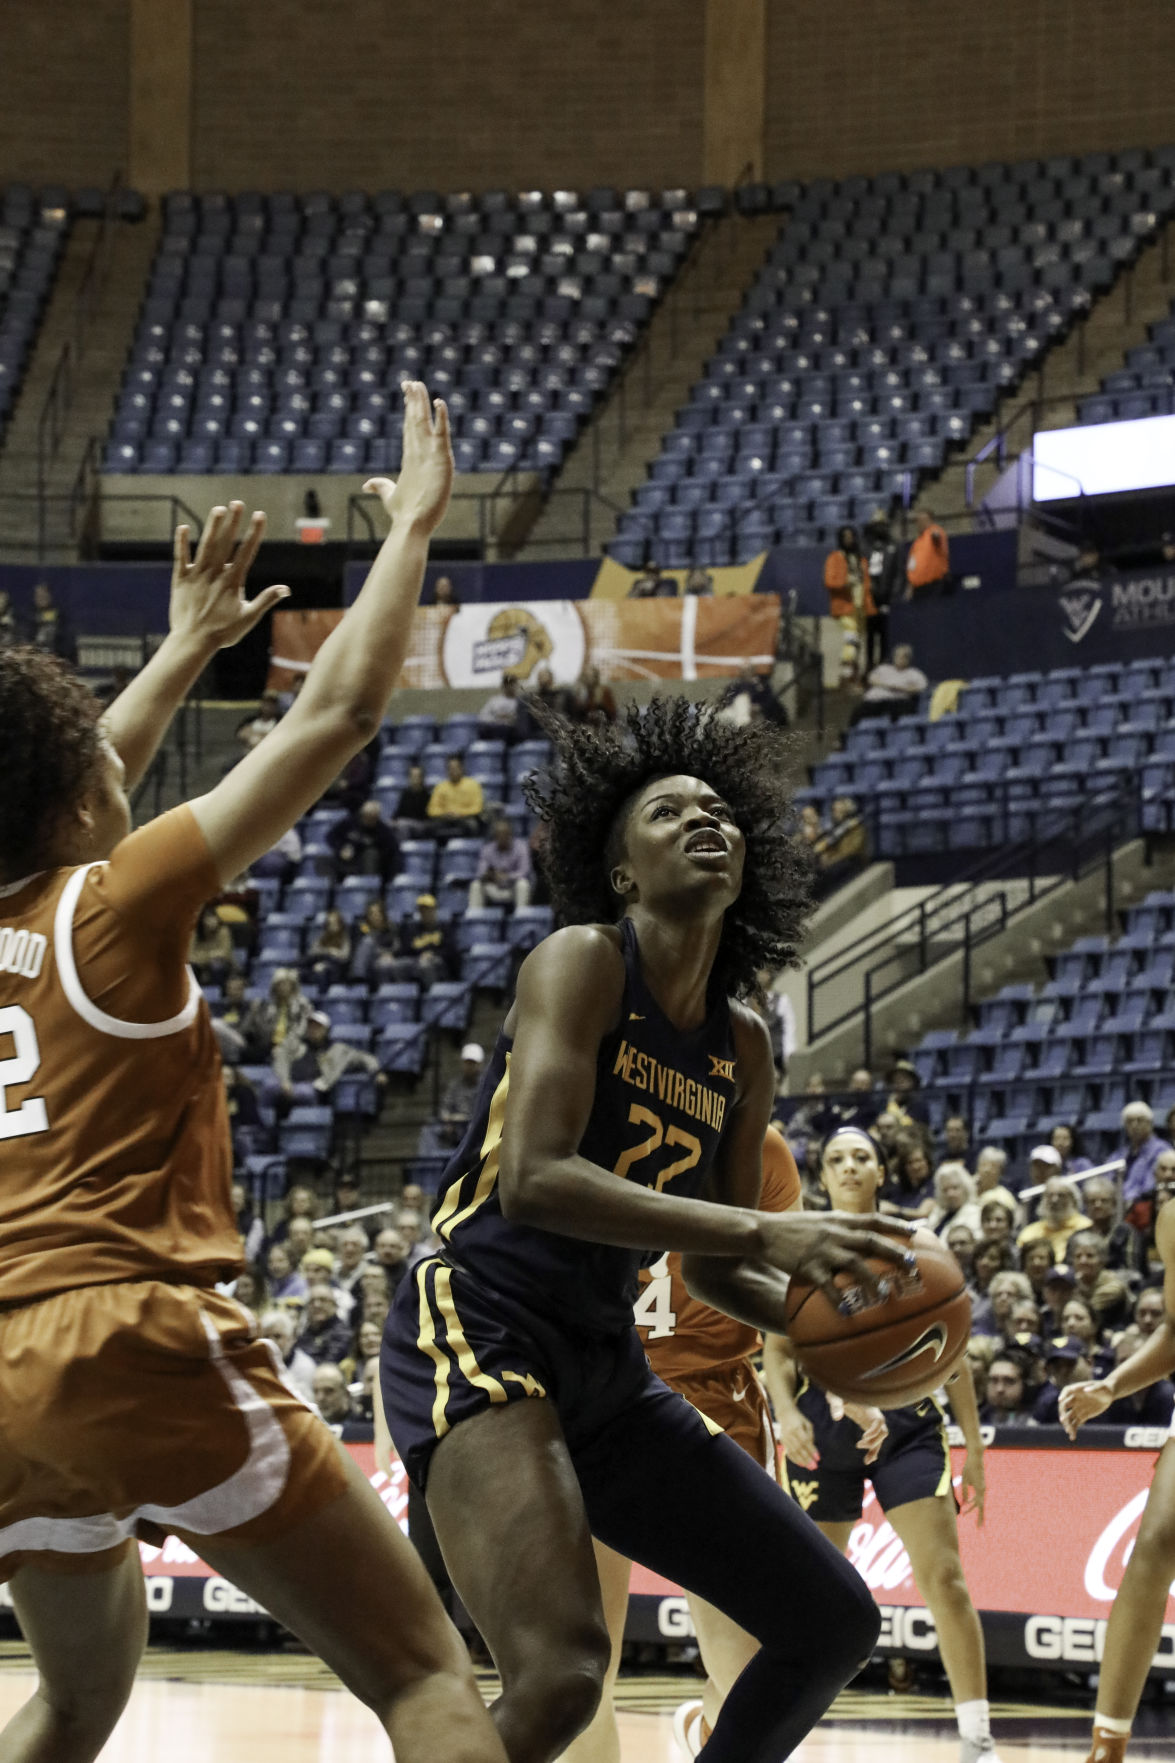 West Virginia forwards Blessing Ejiofor sets up a shot against Texas at the WVU Coliseum on Jan. 12, 2020.